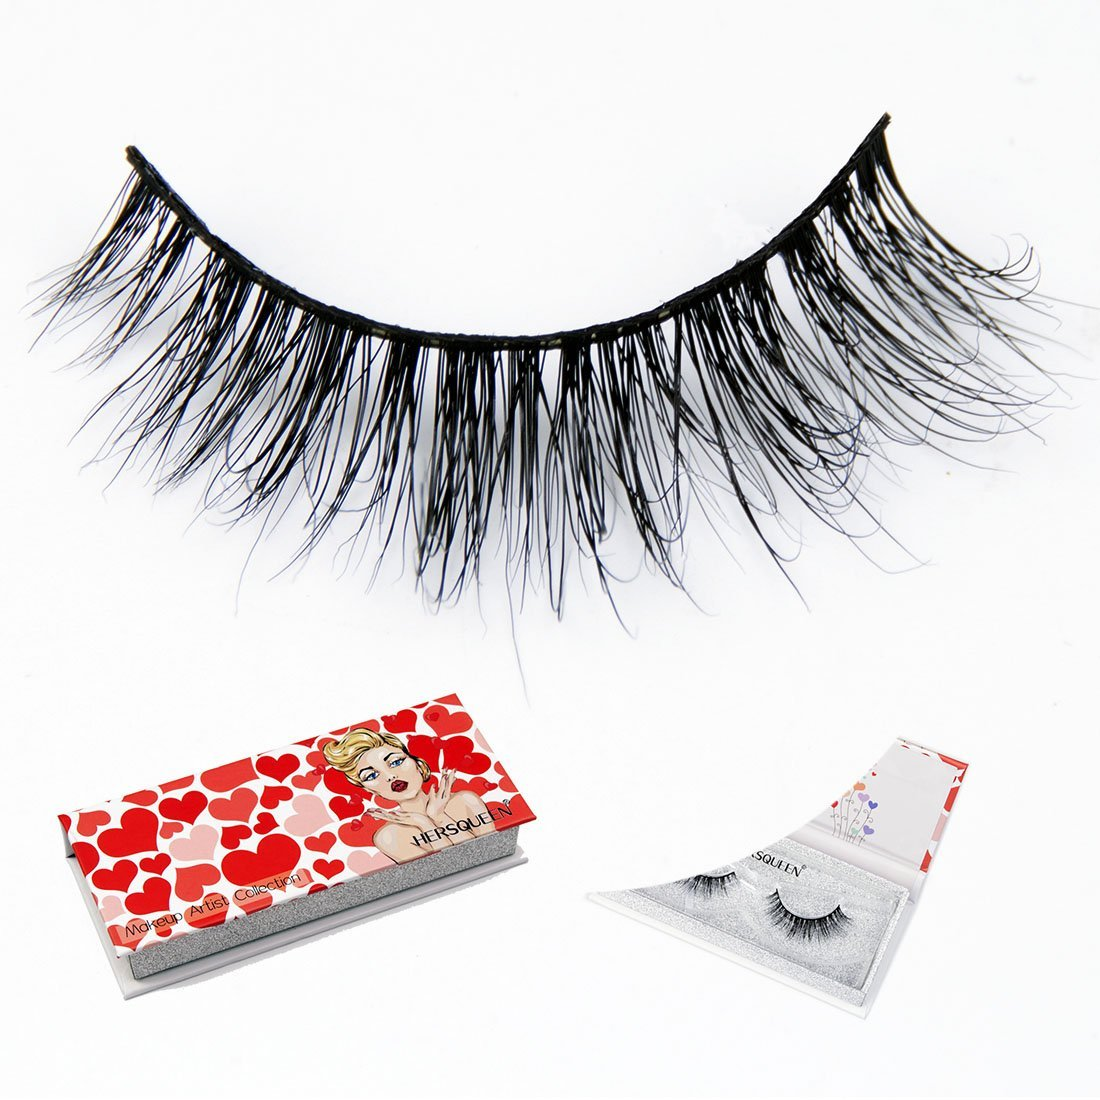 197e936ea82 Get Quotations · High End Makeup 3D Mink Lashes 100% Cruelty-Free Siberian  Mink Fur Fake Lashes